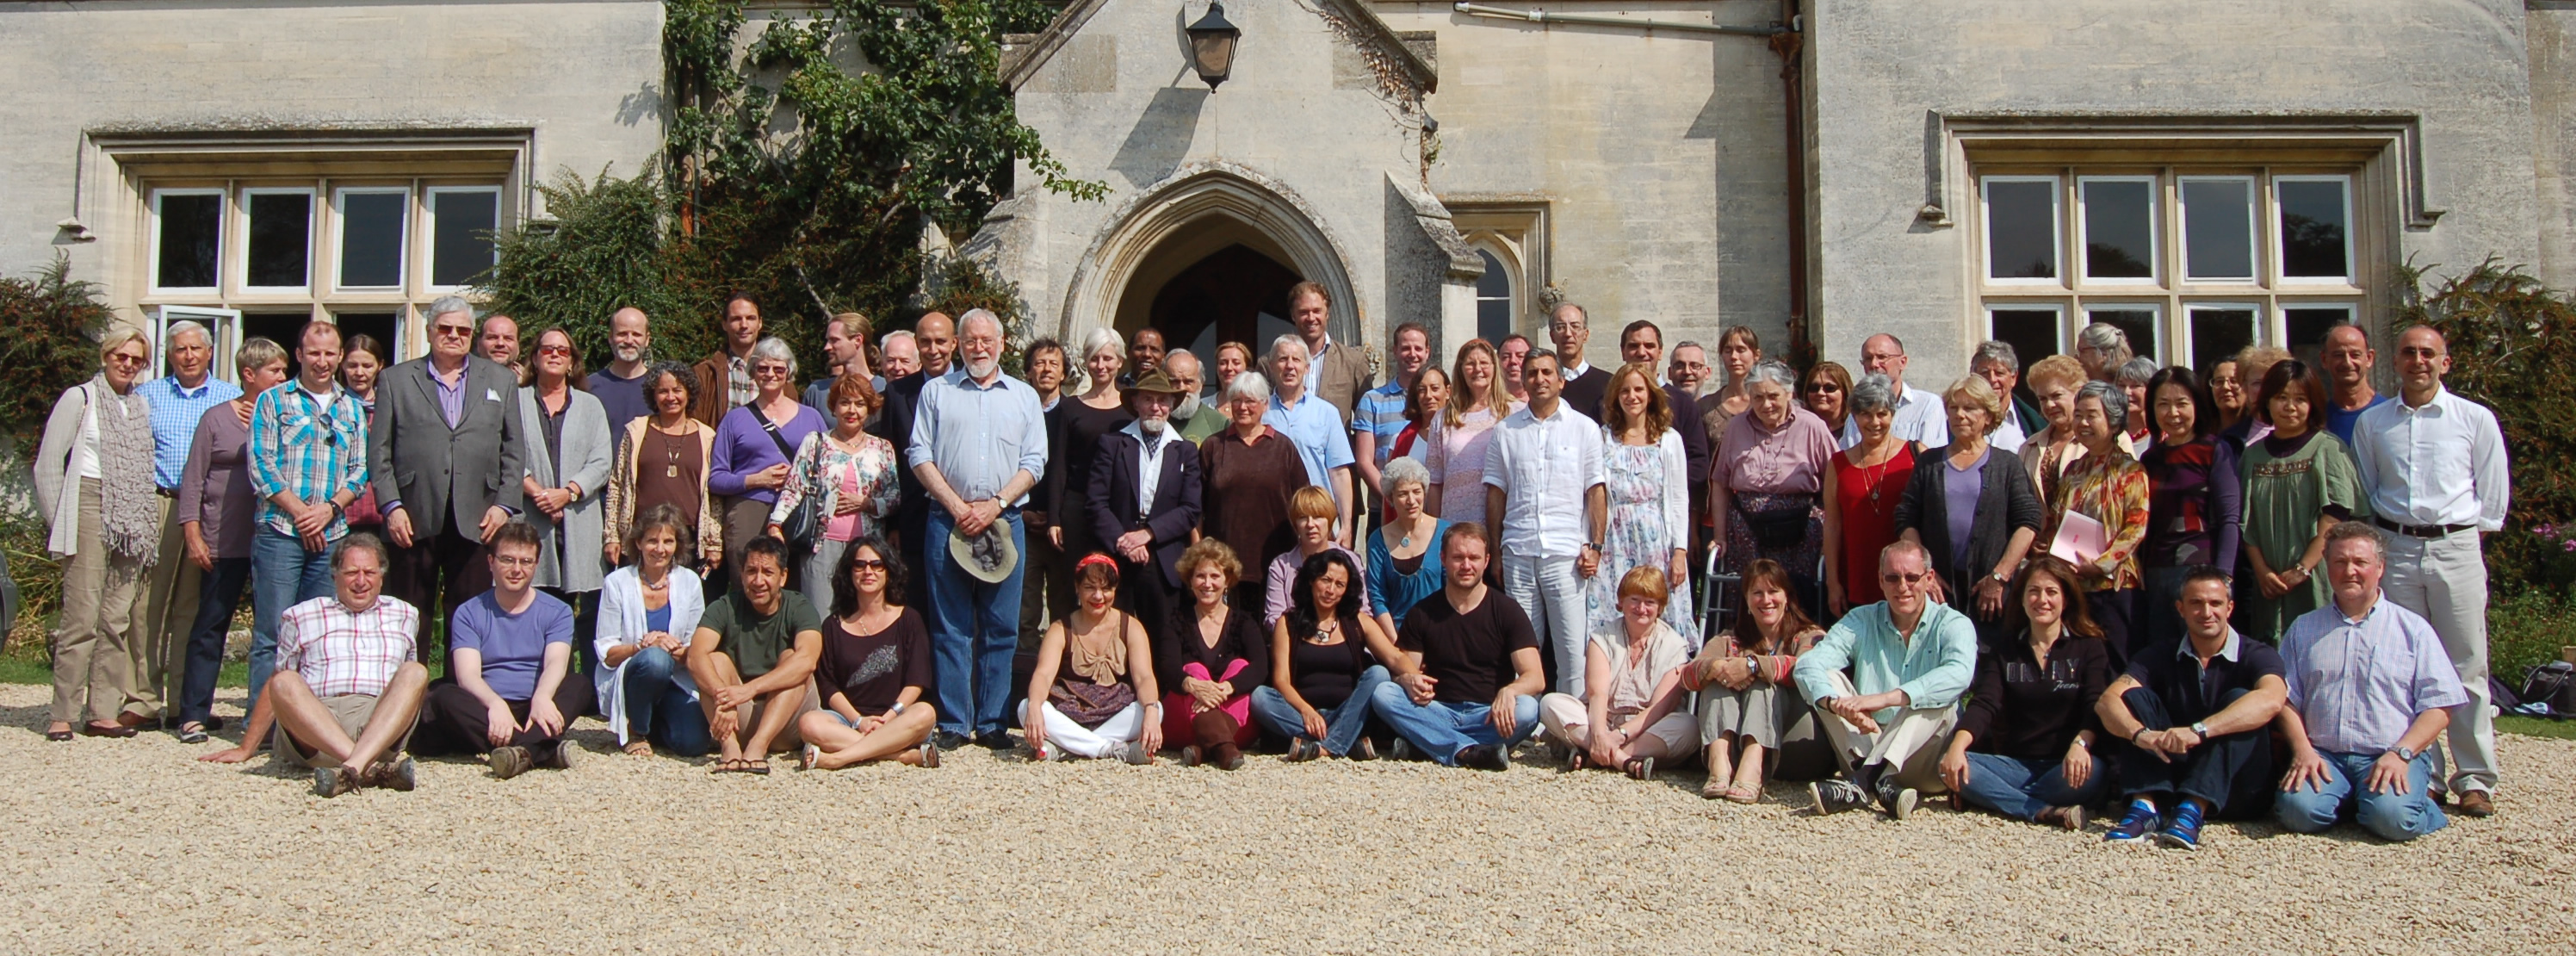 Kabbalah Society 2011 Participants Group Photo